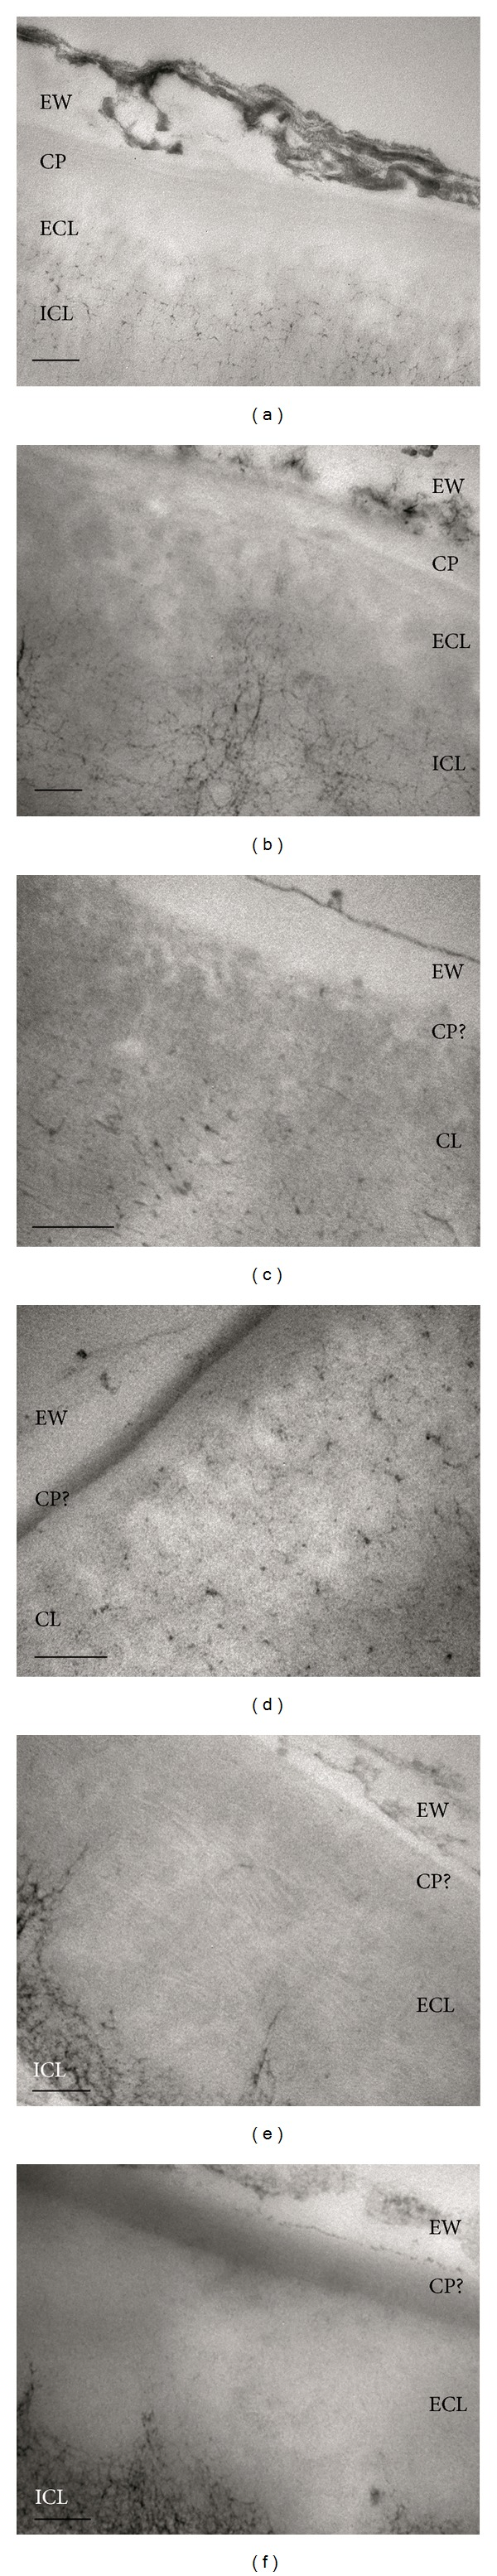 Ultrastructure and cuticular layers of eucalypt, poplar, and pear cuticles embedded in <t>Spurr's</t> (a, c, and e) and LR-White resin (b, d, and f). EW: epicuticular waxes, CP: cuticle proper, CL: cuticular layer, ECL: external cuticular layer, and ICL: internal cuticular layer. Bars: 200 nm.